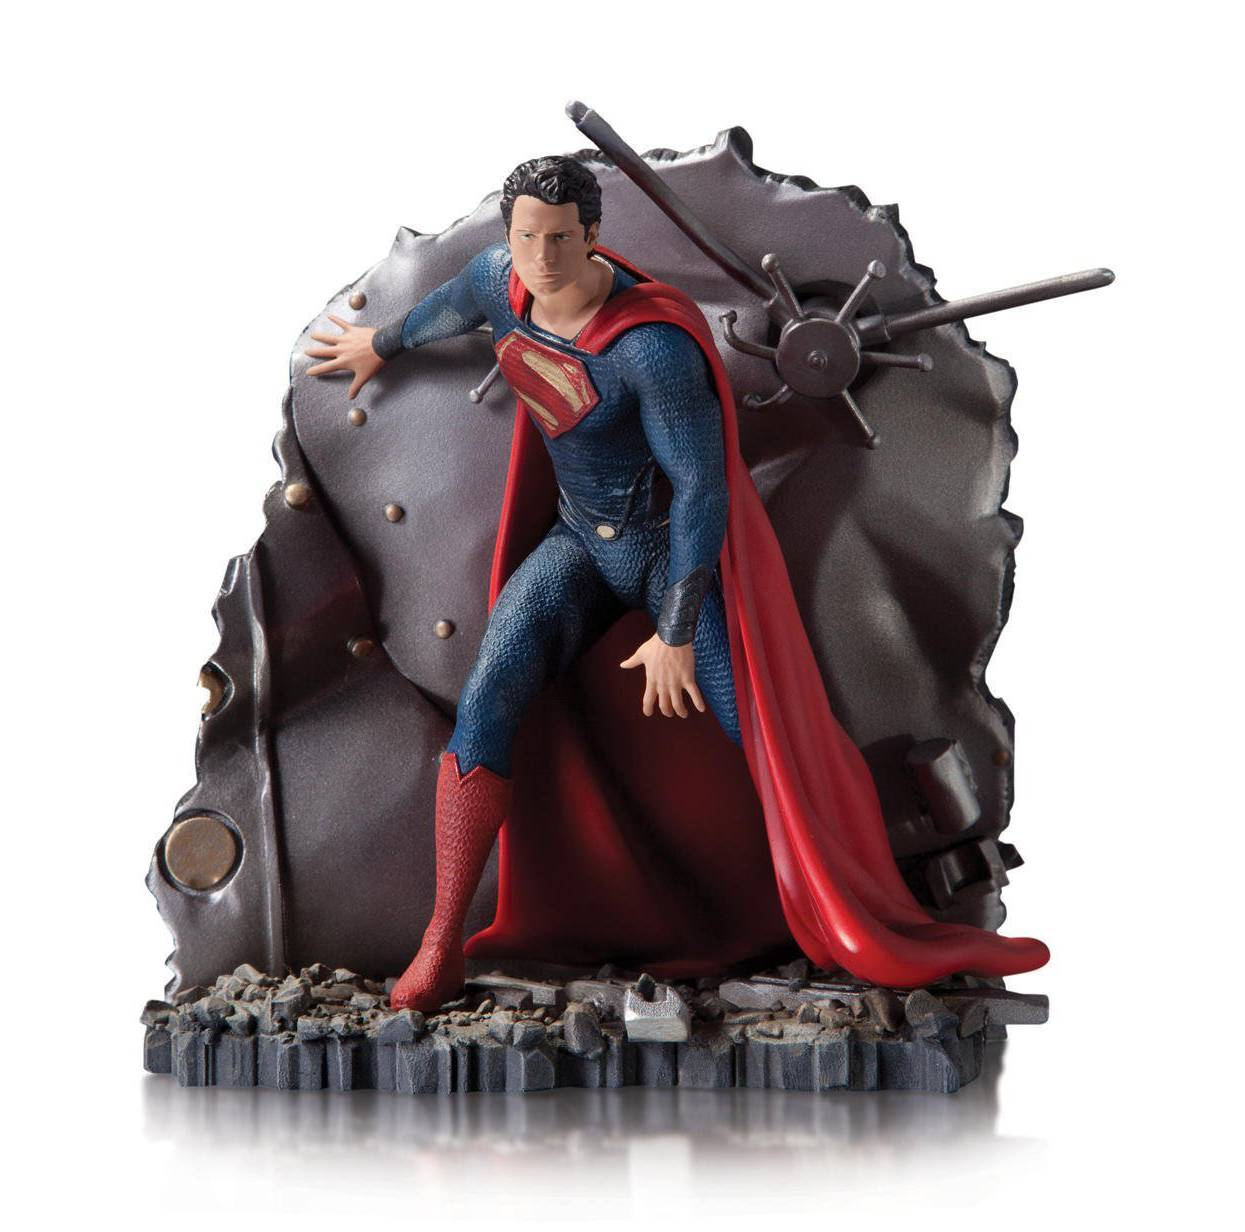 https://0901.nccdn.net/4_2/000/000/038/2d3/MAN-OF-STEEL-1-12-SCALE-SUPERMAN-VAULT-STATUE.jpg